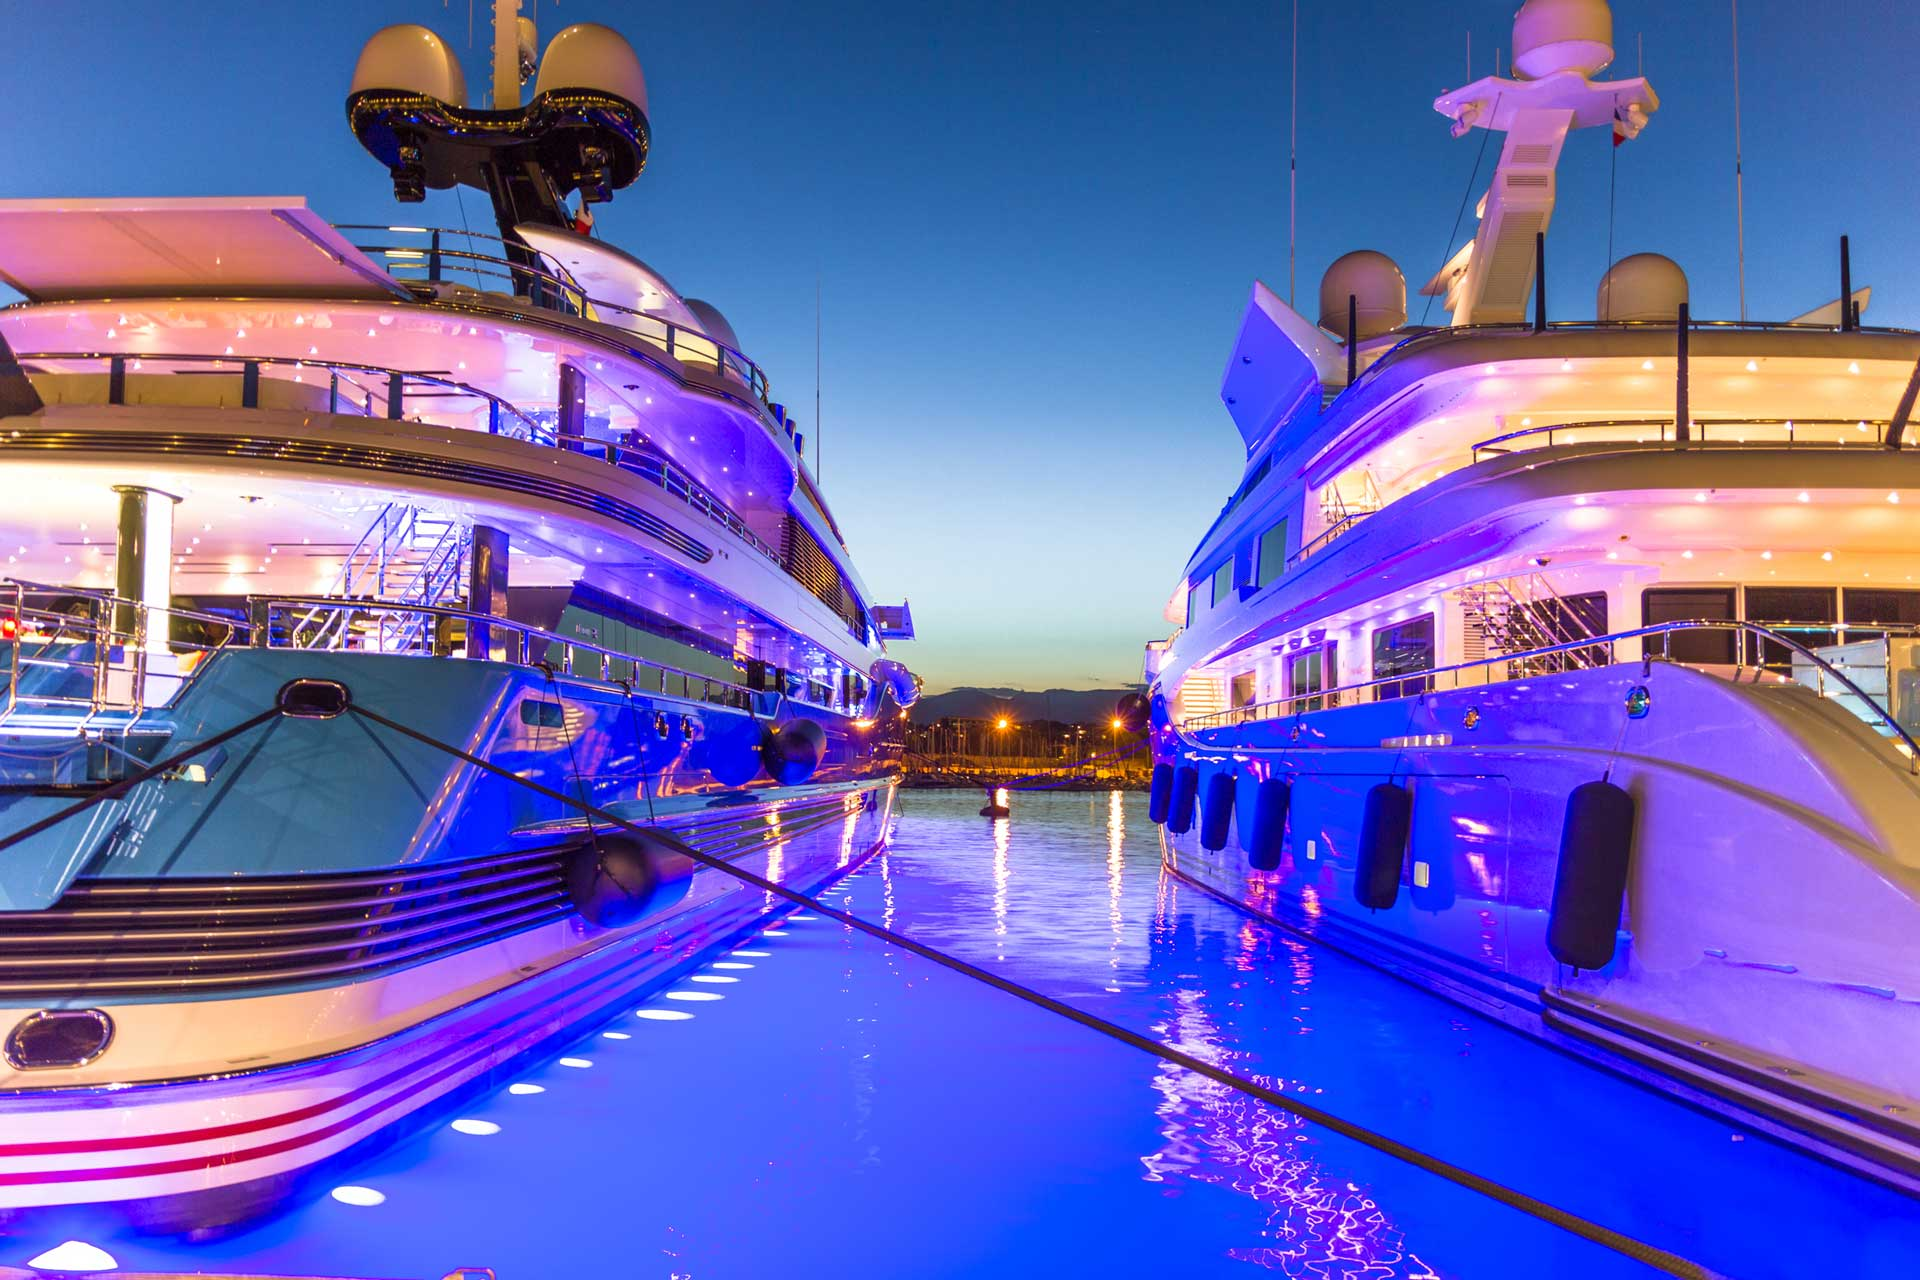 Athens Gold Yachting - Luxury Yachts at dawn